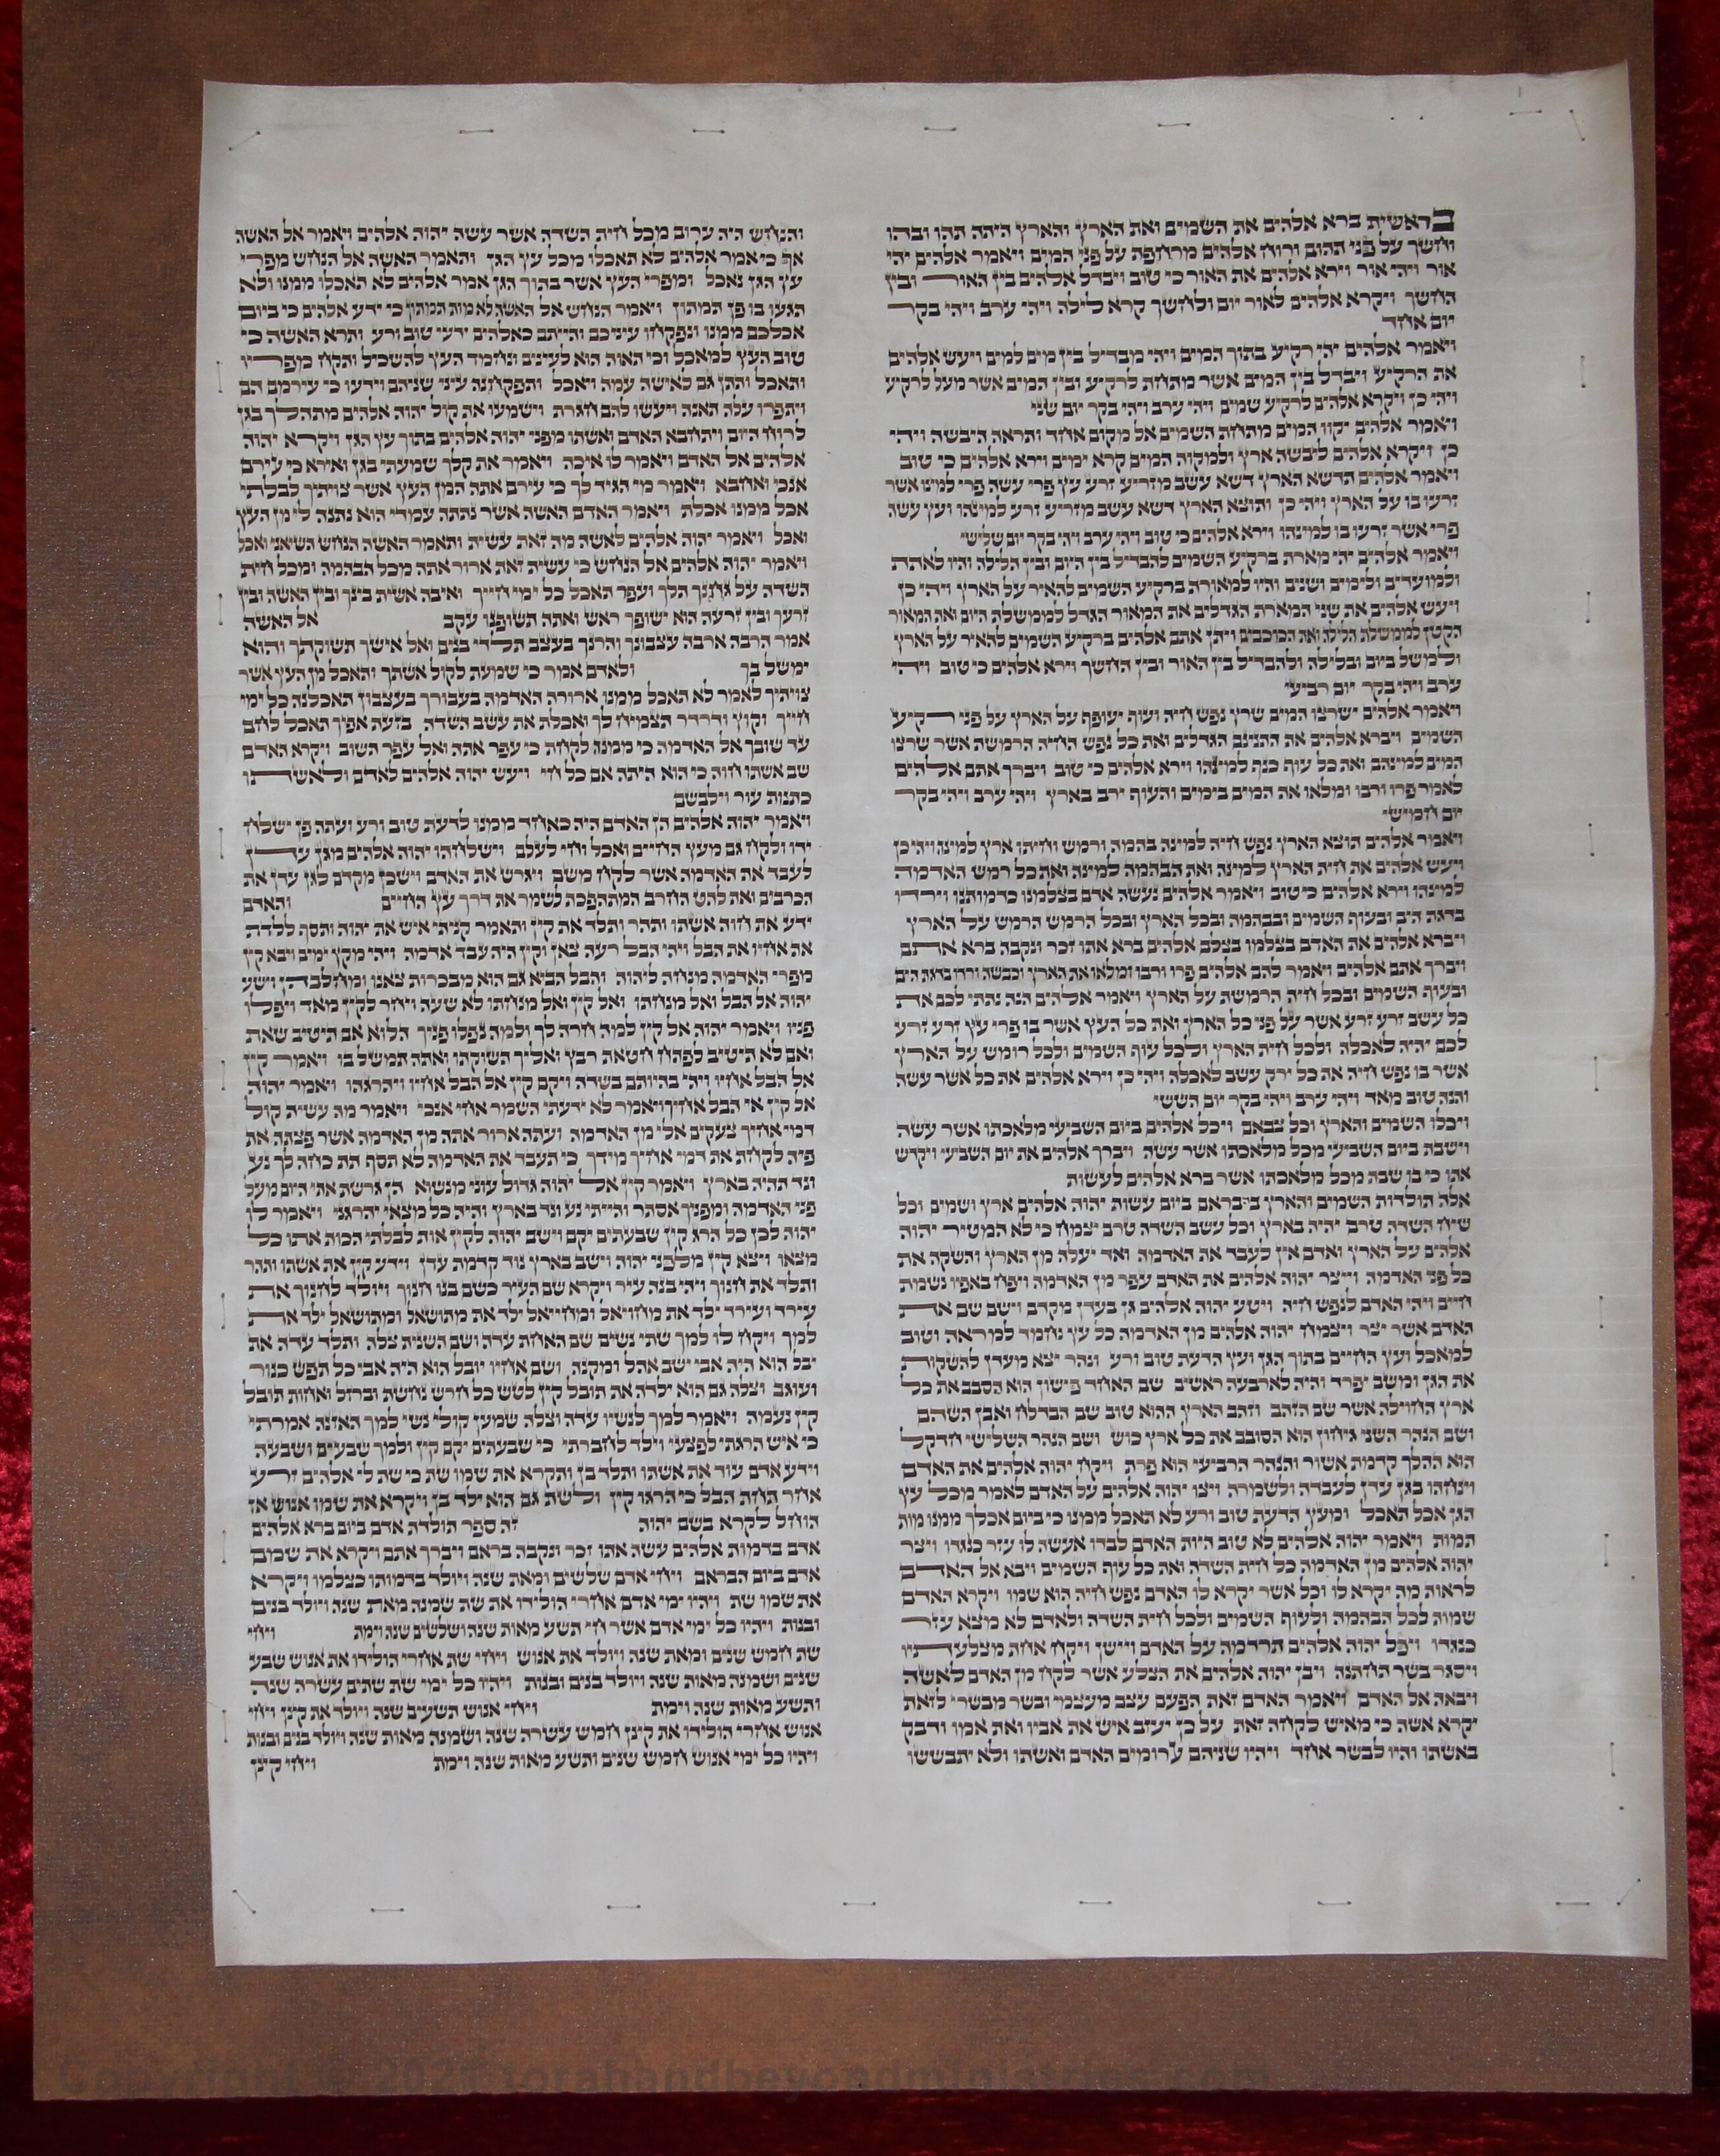 Genesis 1:1 to Genesis 5:9 photograph from a very old Torah Scroll